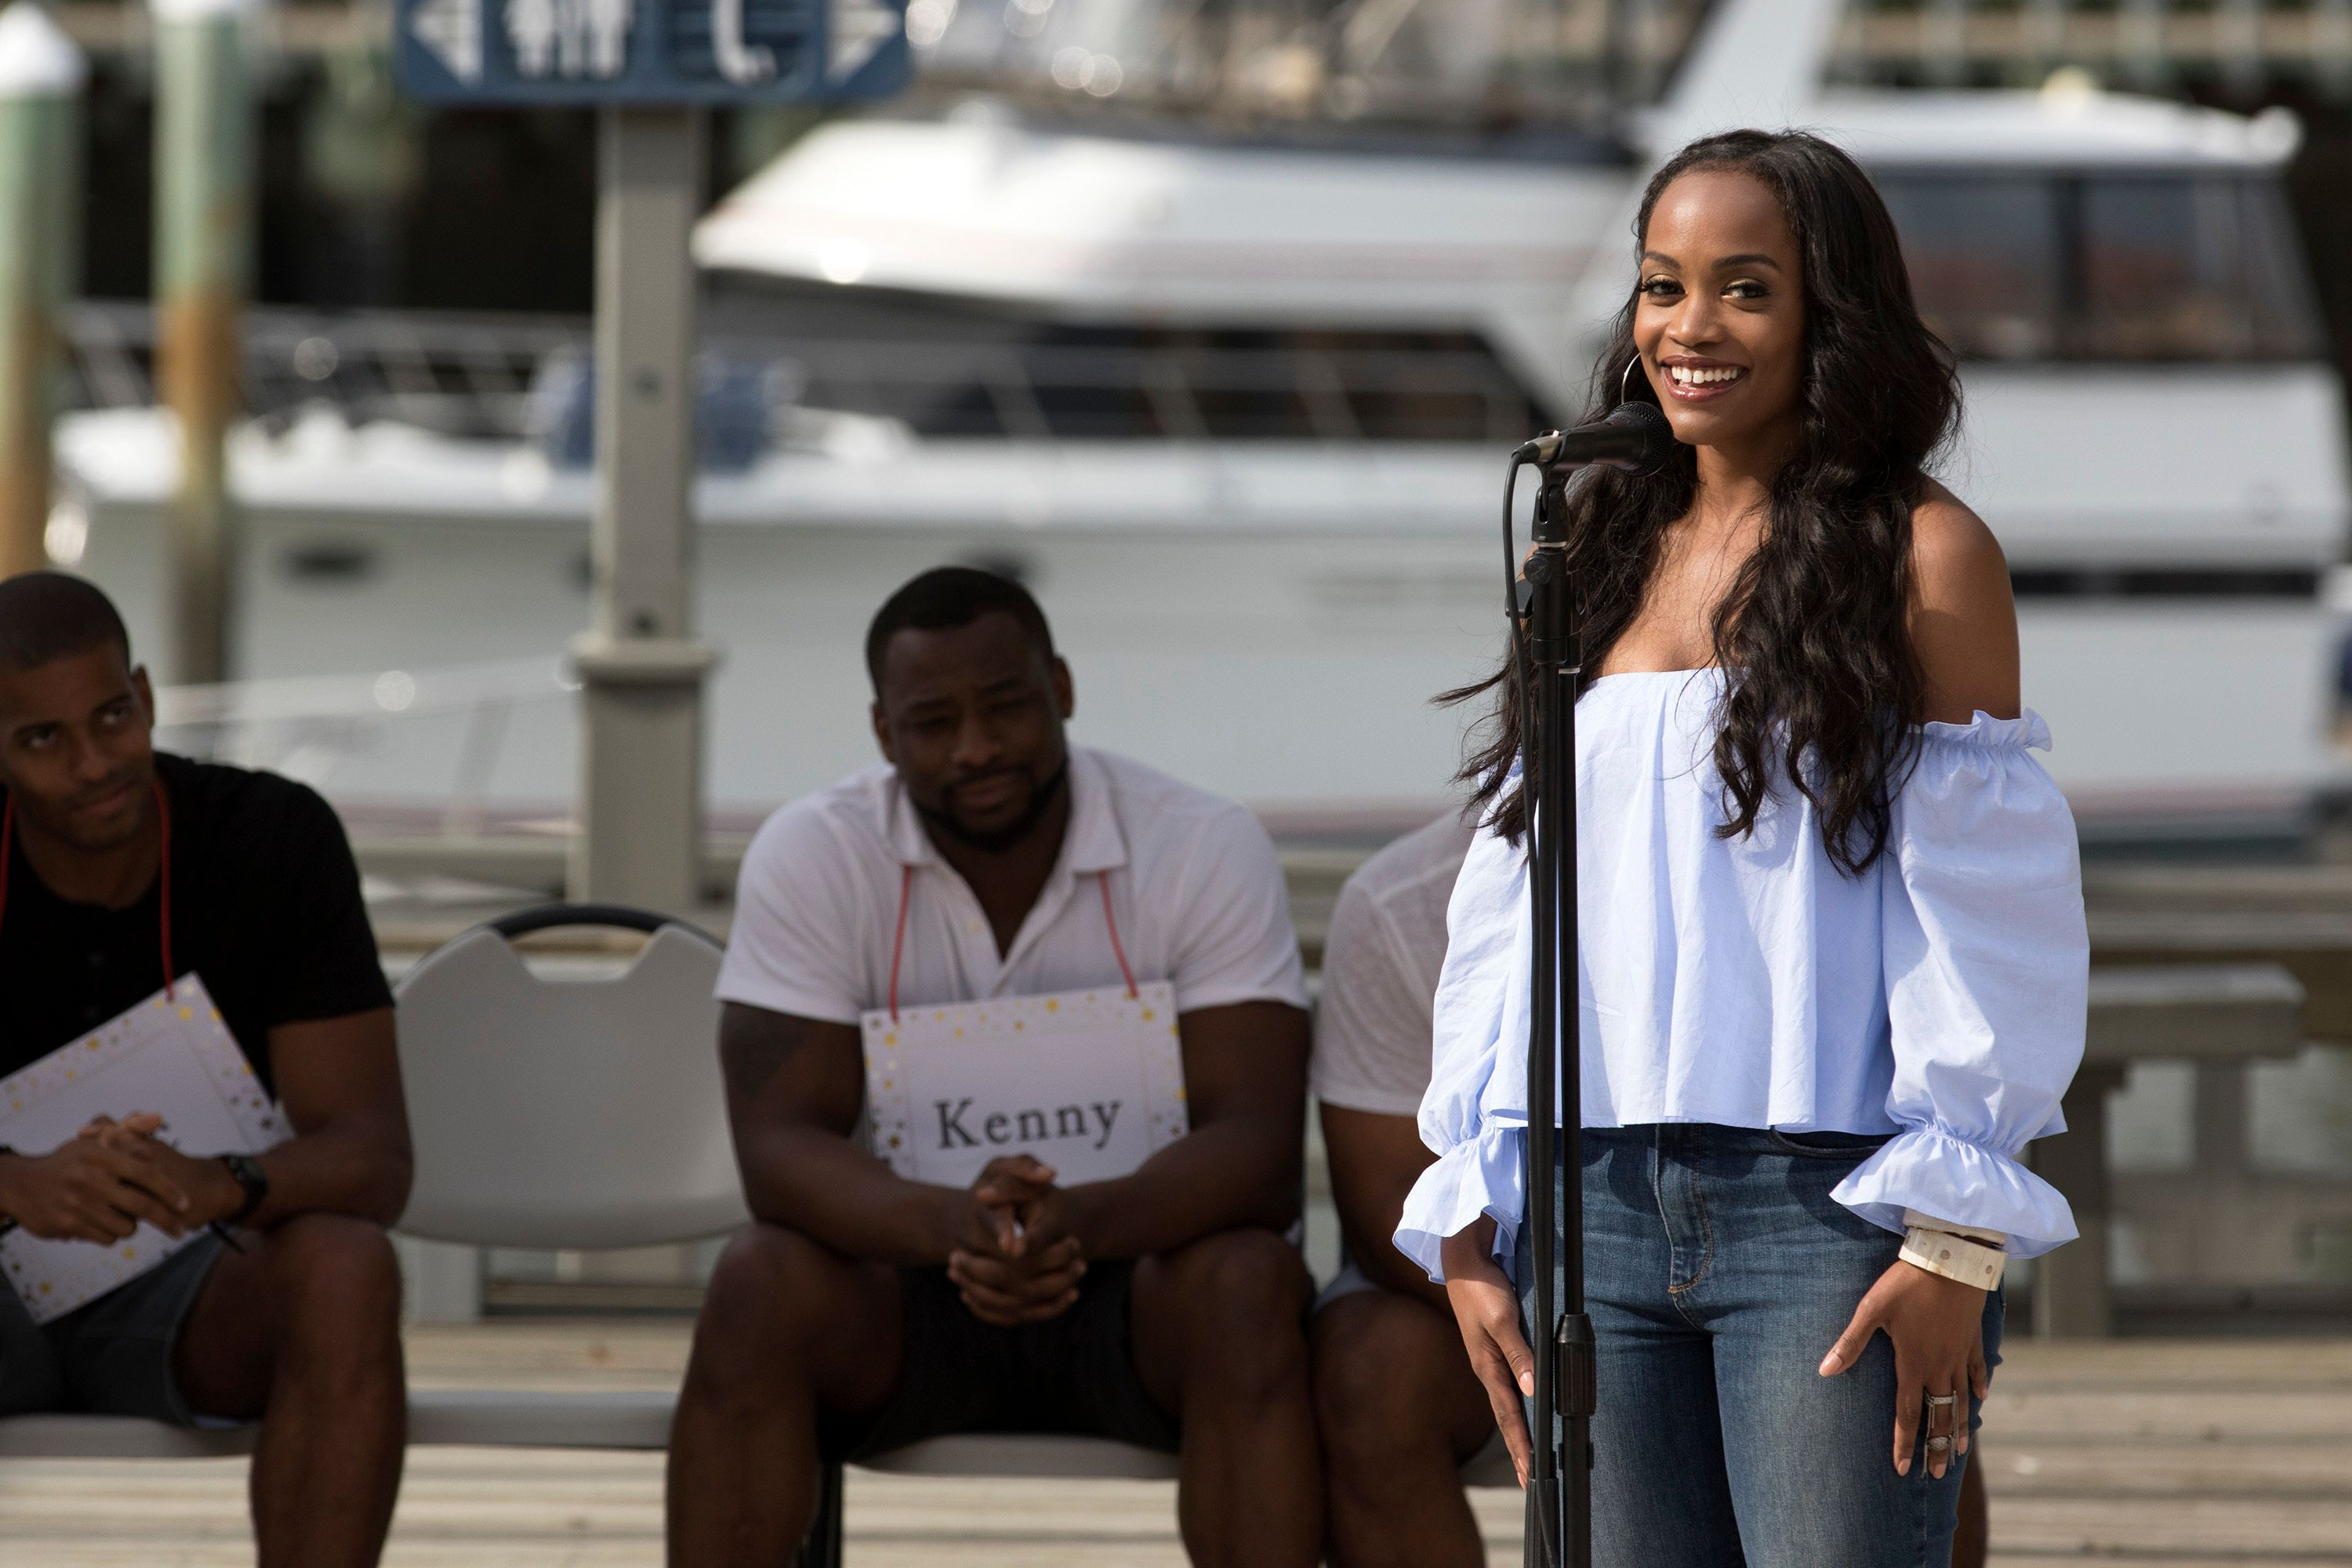 """BACHELORETTE 13 - """"Episode 1304"""" -The contentious cocktail party continues, as a frustrated Eric implores the rest of bachelors to stop talking about him to Rachel. While most of the men are perfectly content to skip the drama, one calculating guy, Lee, deceptively steals Rachel away from Kenny for a second conversation. The two bachelors' confrontation sets off a heated argument, totally distracting Rachel as she attempts to better acquaint herself with the other men. So she makes a decision that surprises all of the bachelors. After the rose ceremony, the remaining men leave the mansion to travel to beautiful, peaceful Hilton Head Island, South Carolina, where Rachel hopes to get a fresh start, on """"The Bachelorette,"""" MONDAY, JUNE 19 (8:00-10:01 p.m. EDT), on The ABC Television Network. (ABC/Bob Leverone)ERIC, RACHEL LINDSAY, KENNY"""